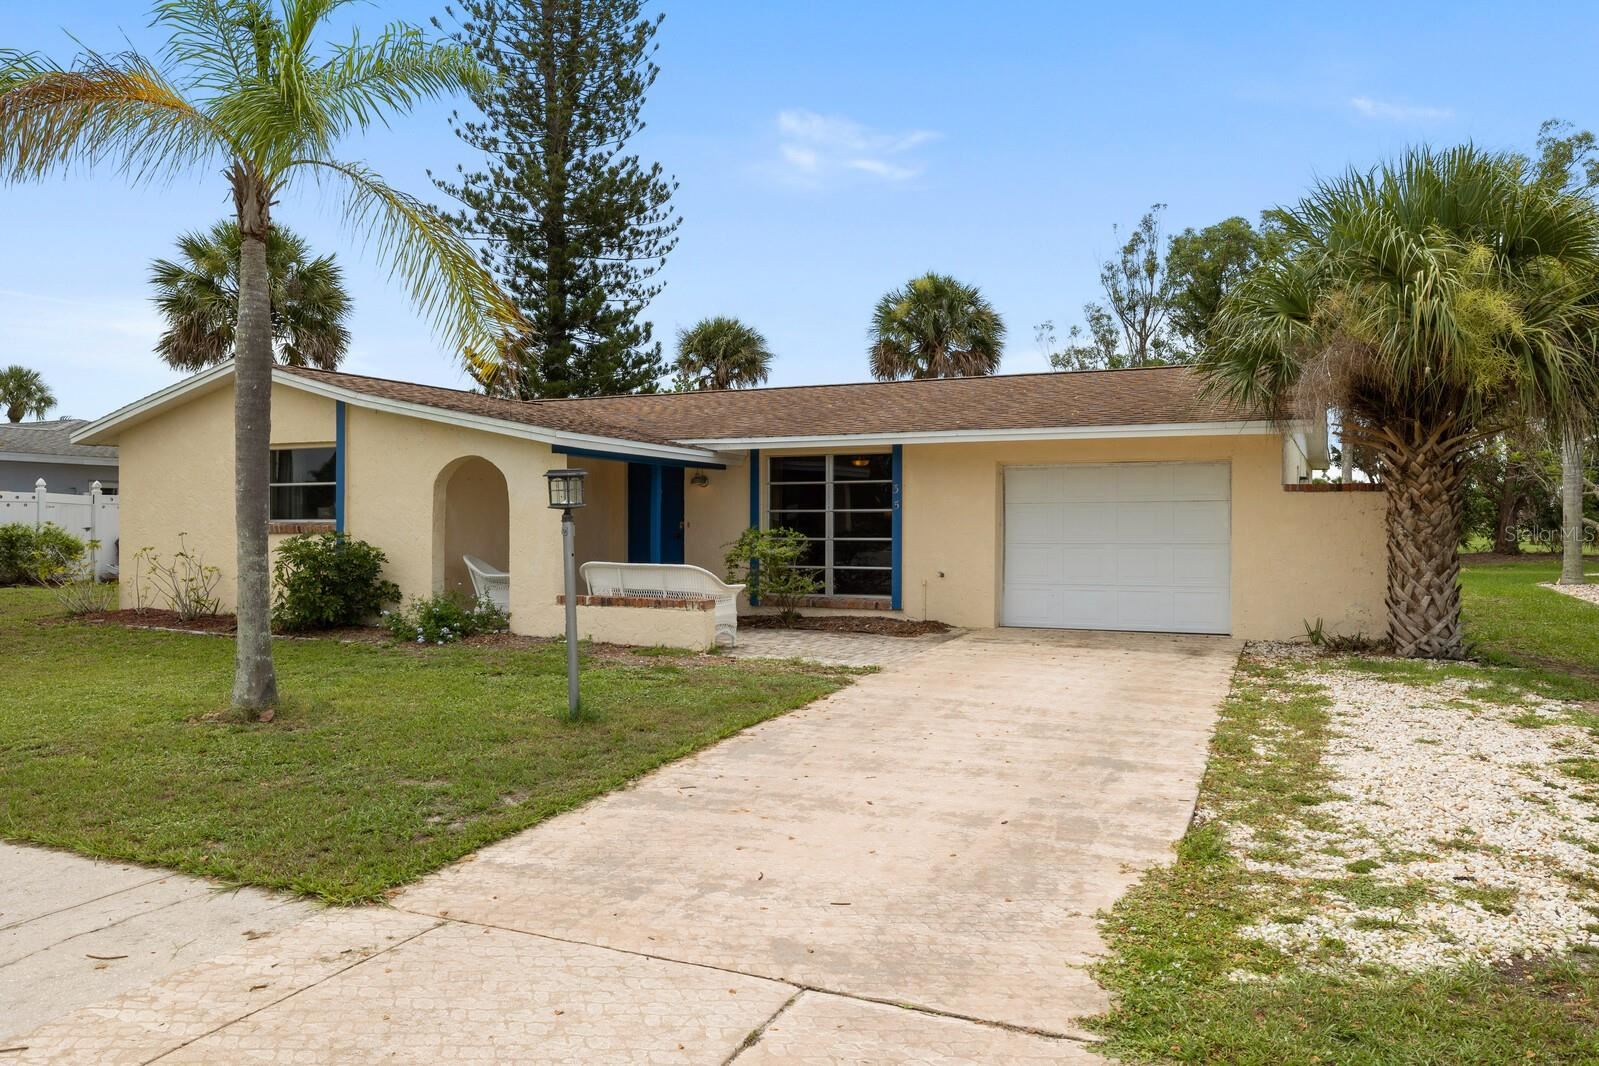 Photo of 35 GOLFVIEW PLACE, ROTONDA WEST, FL 33947 (MLS # D6120030)